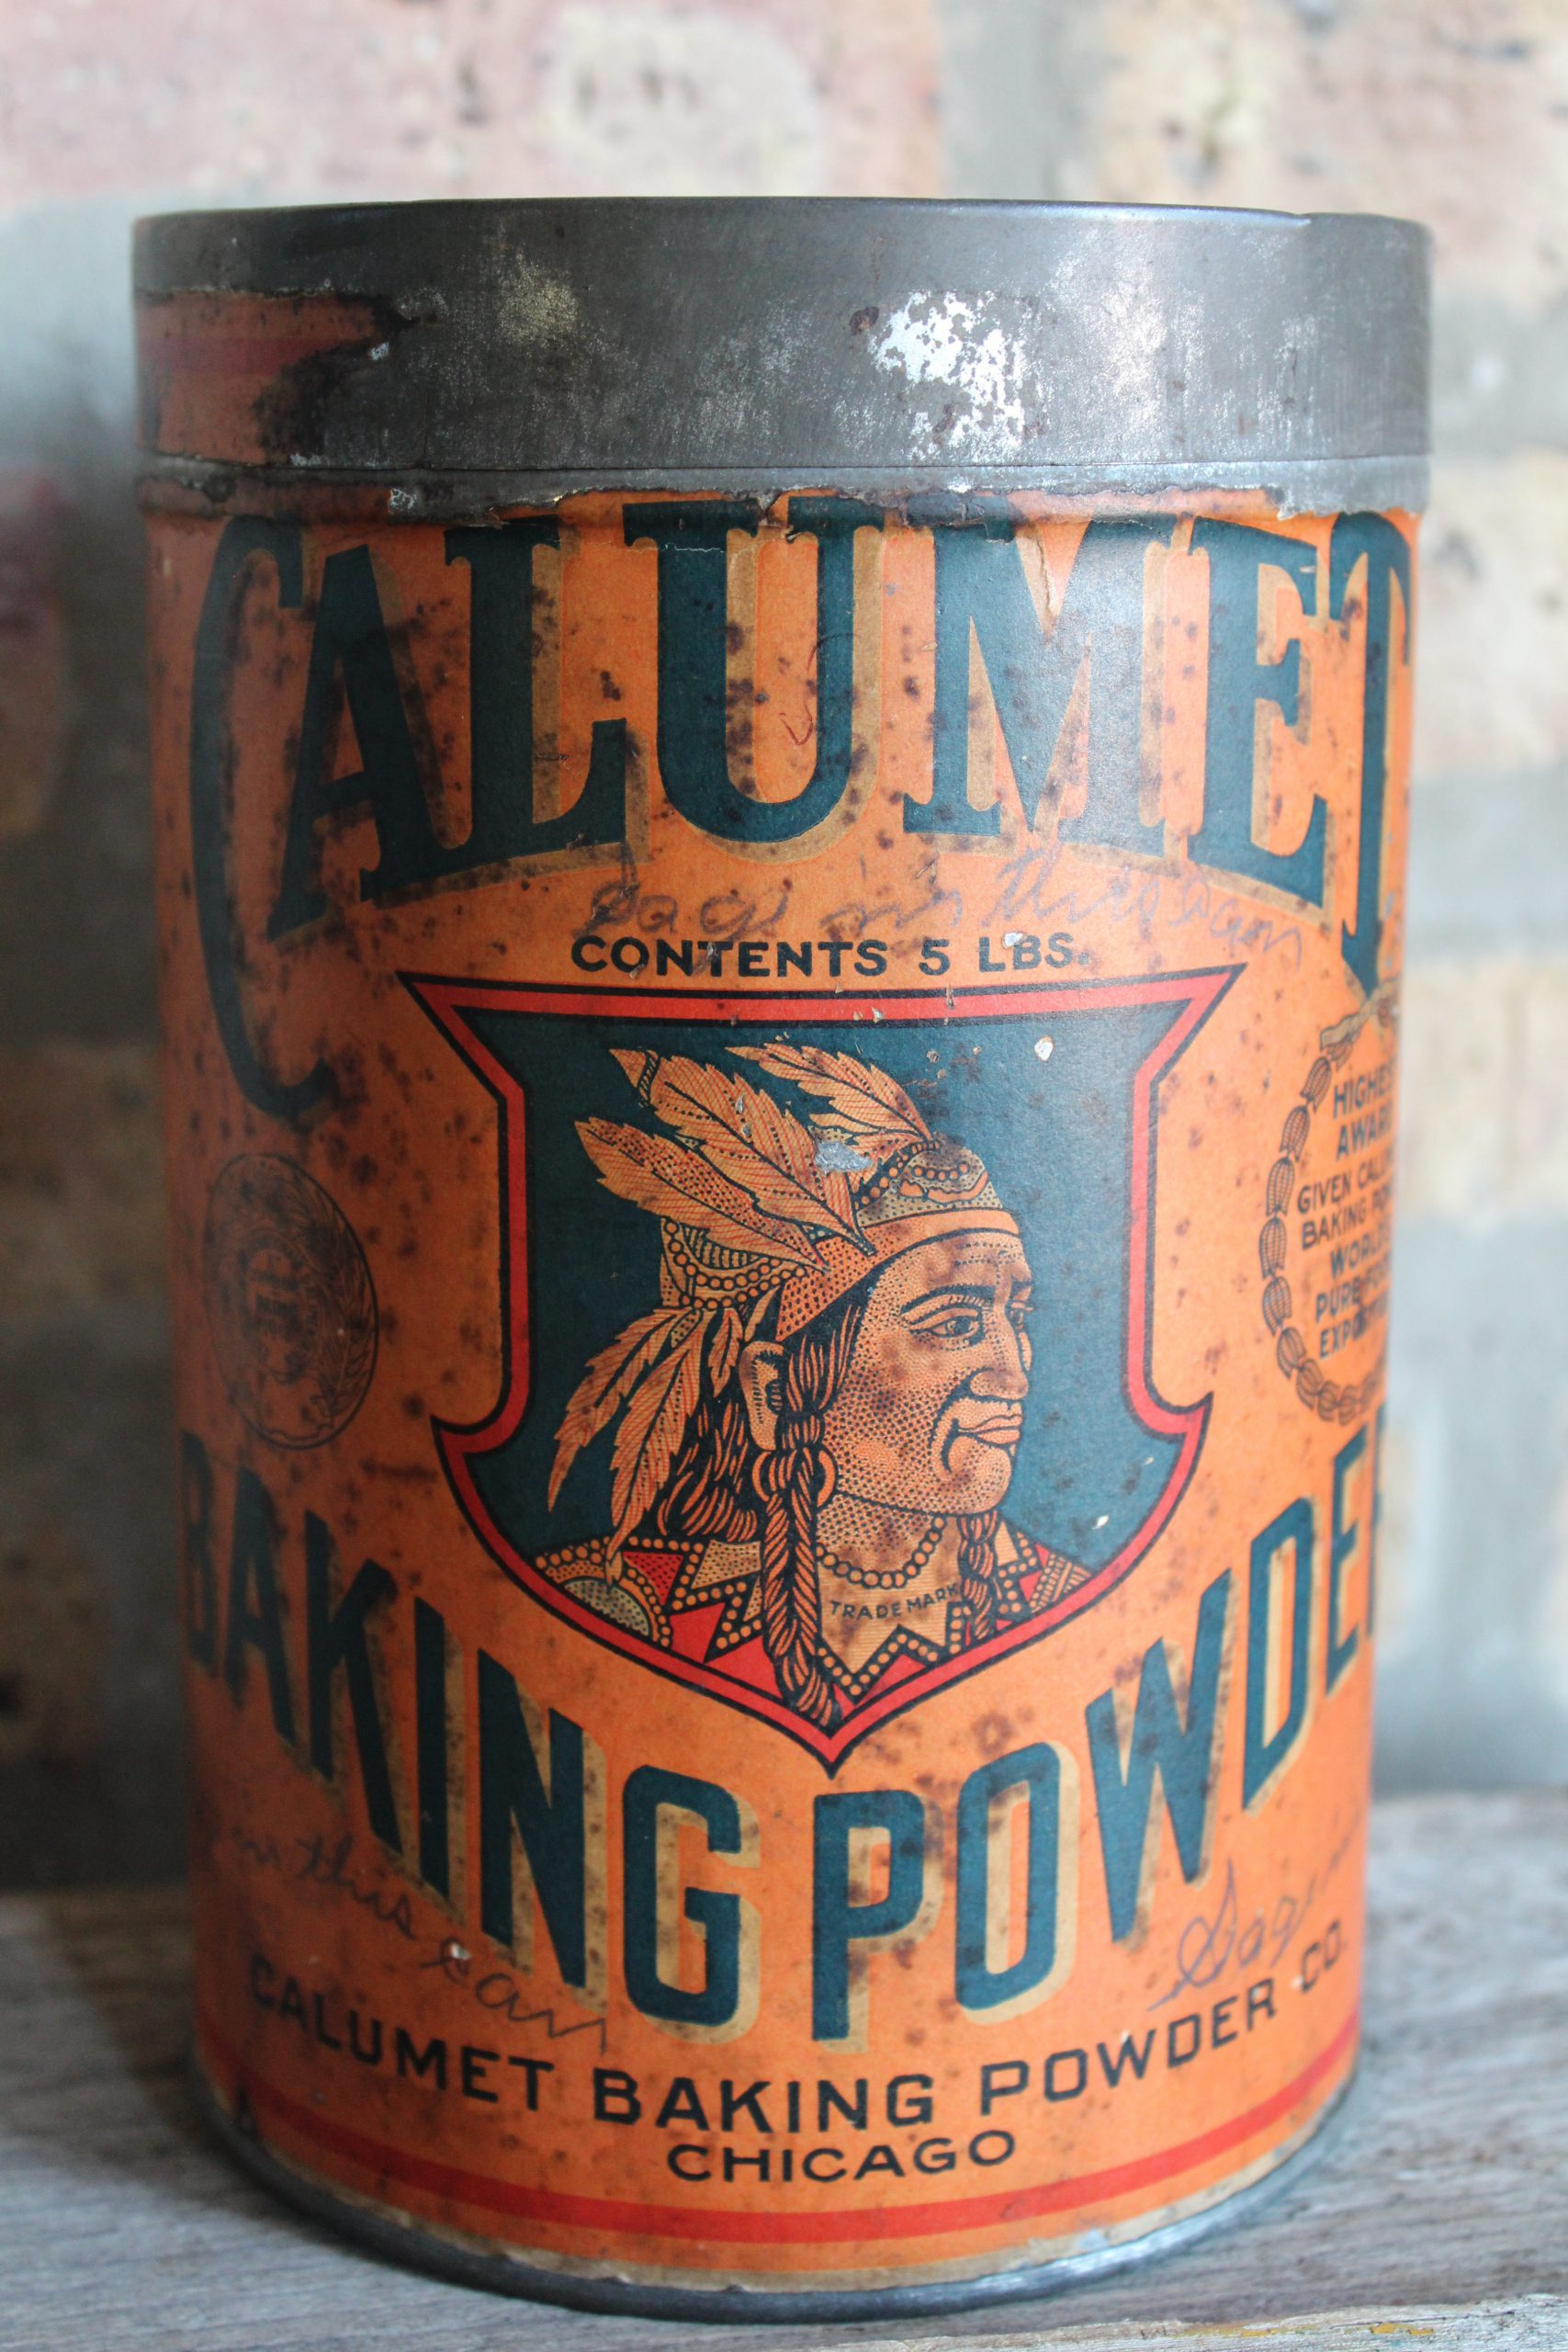 Calumet Baking Powder Company, est. 1889